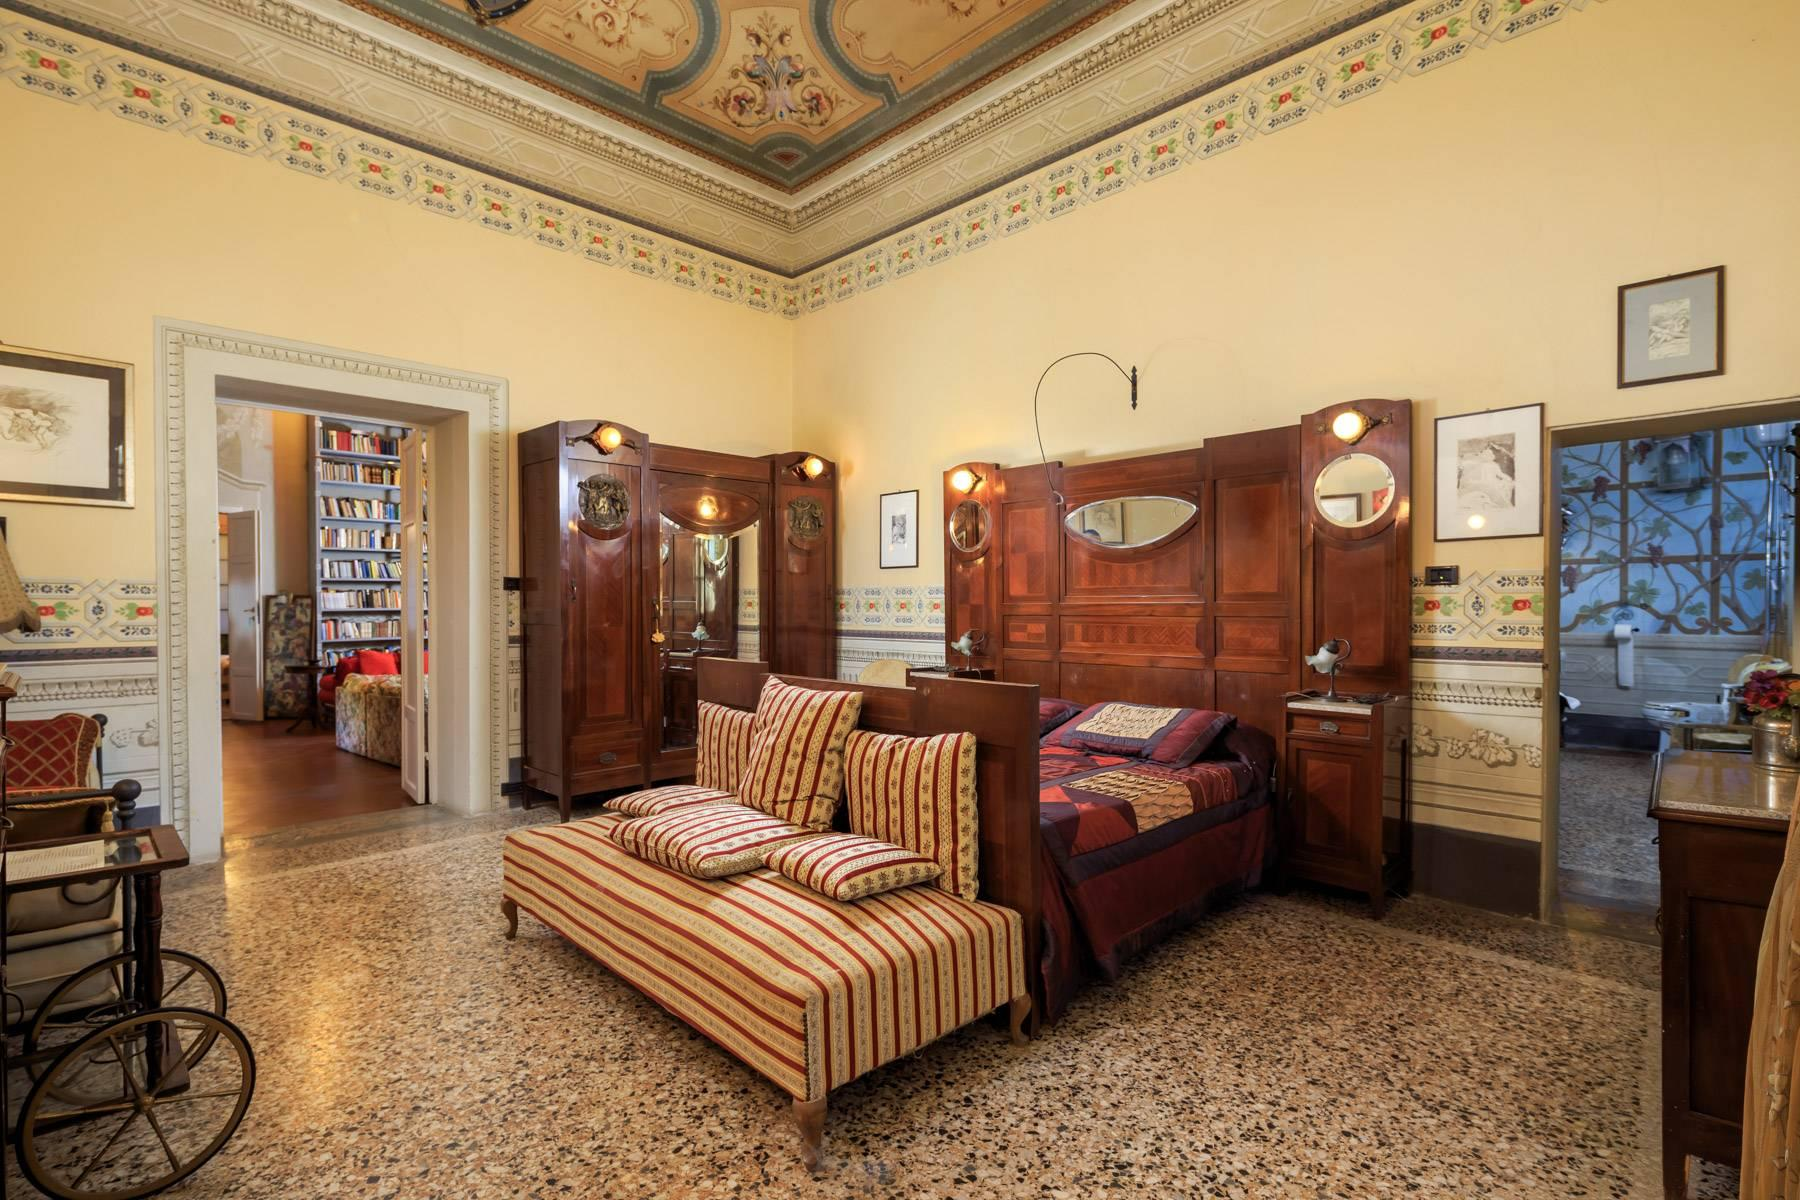 Romantic villa for sale in Pisa - 16